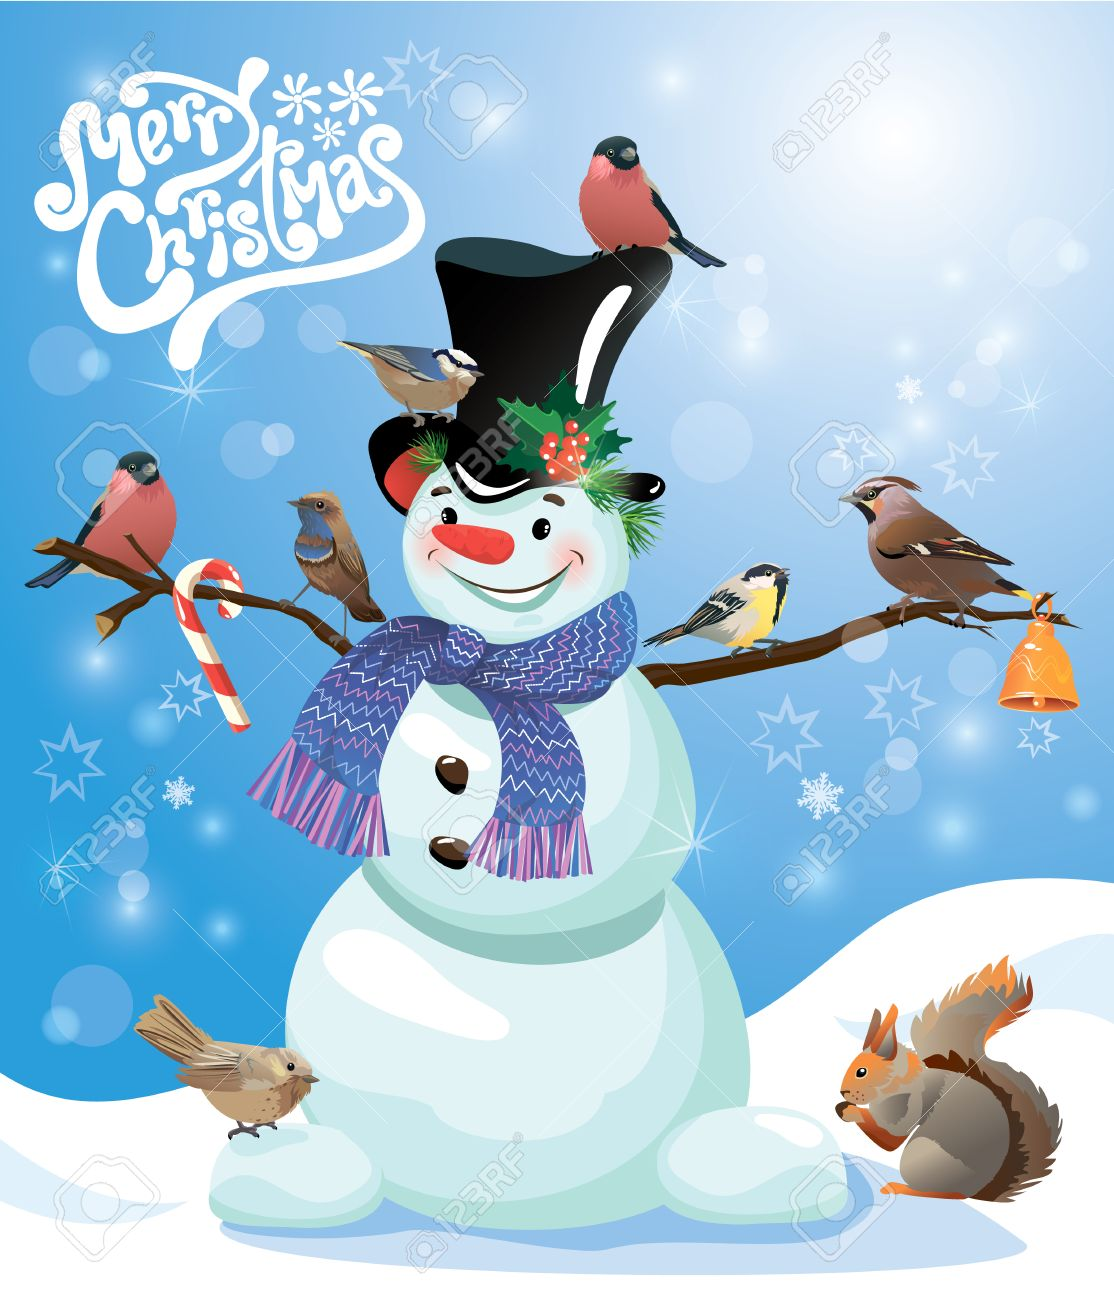 card with funny snowman and birds on blue snow background